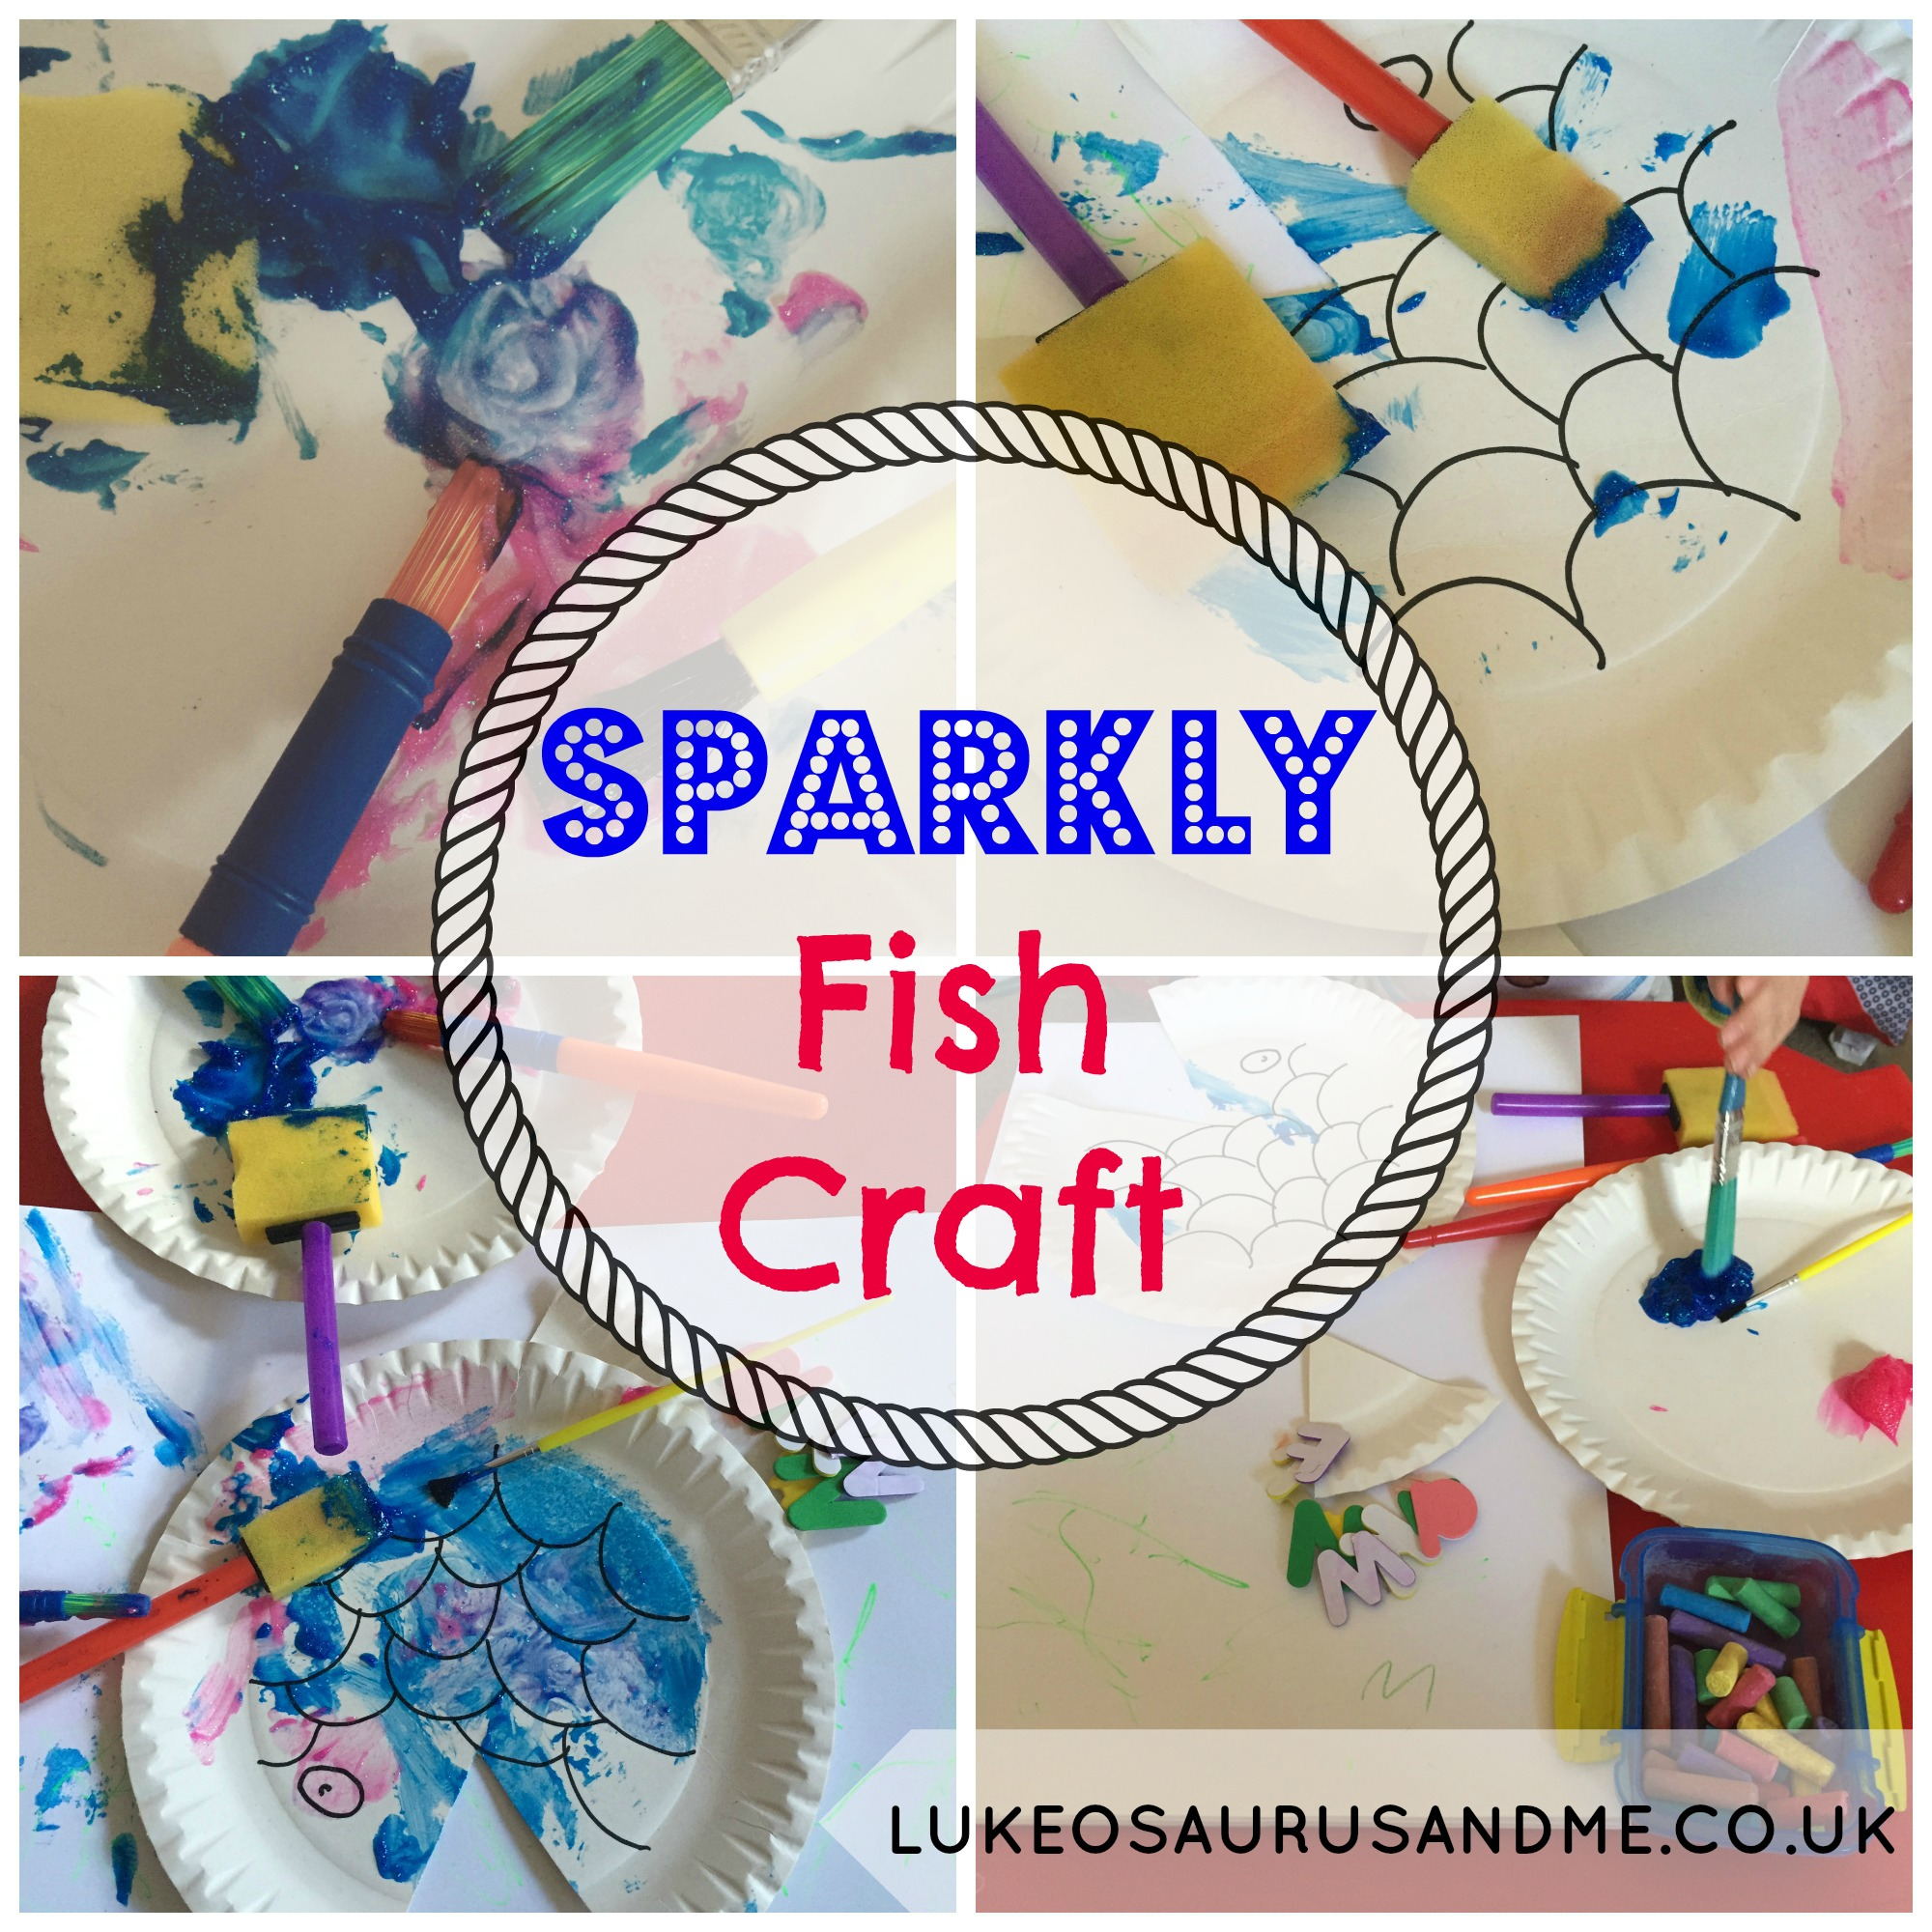 Sparkly Fish Craft for toddlers using paper plates from lukeosaurusandme.co.uk